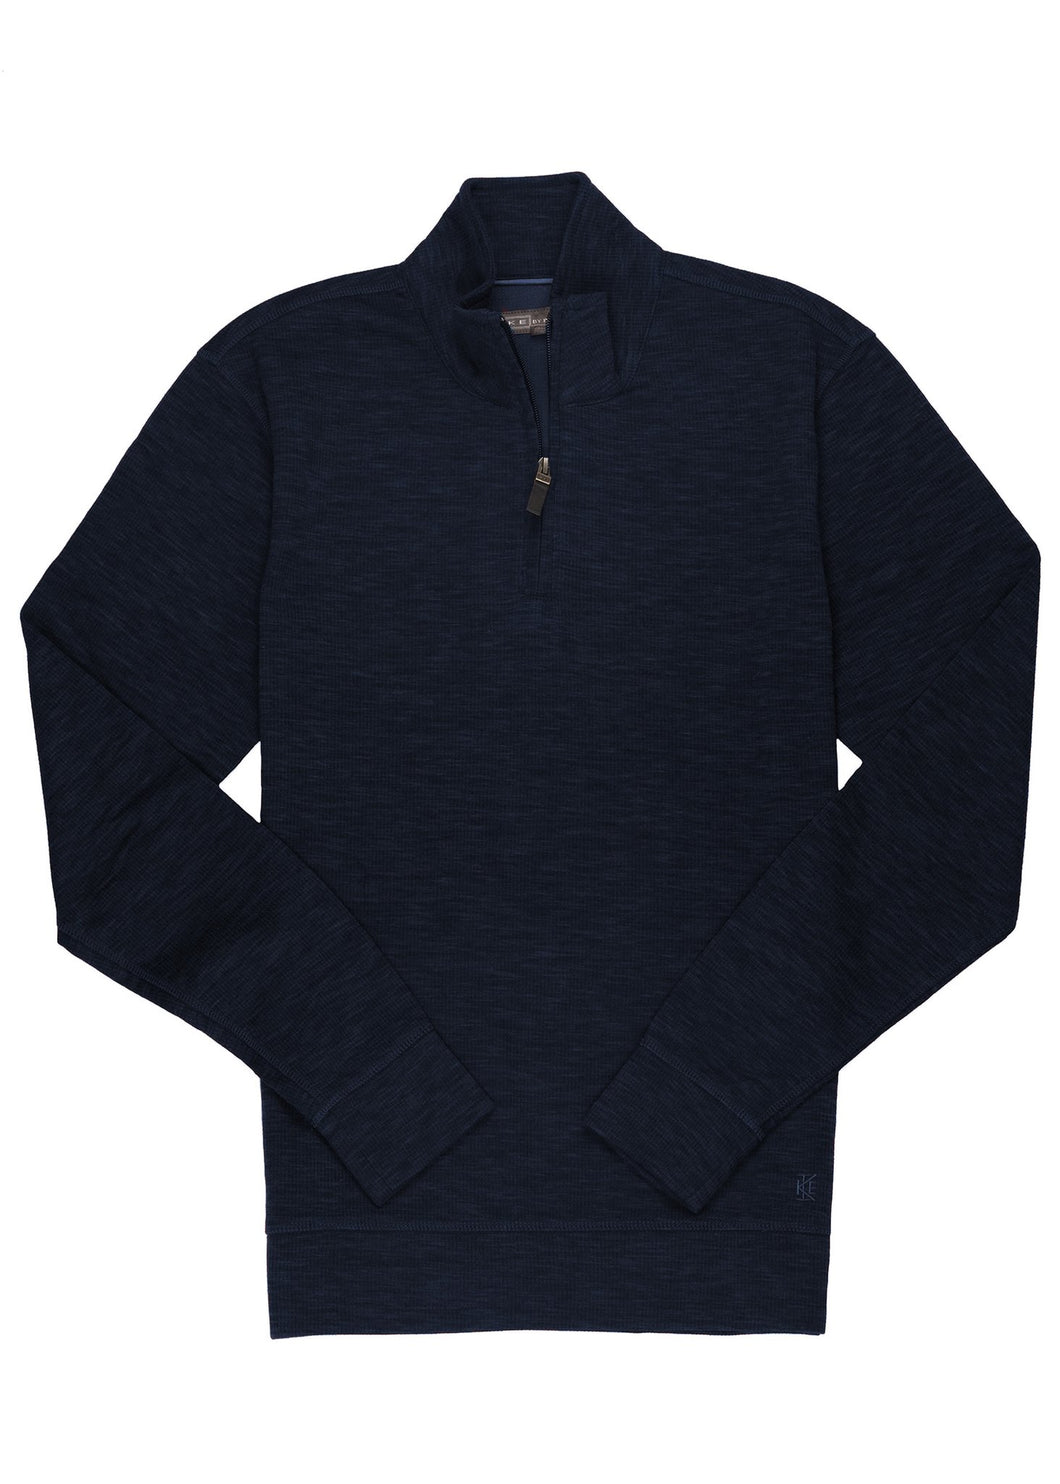 Ike by Ike Behar Performance 1/4 Zip Navy Pullover